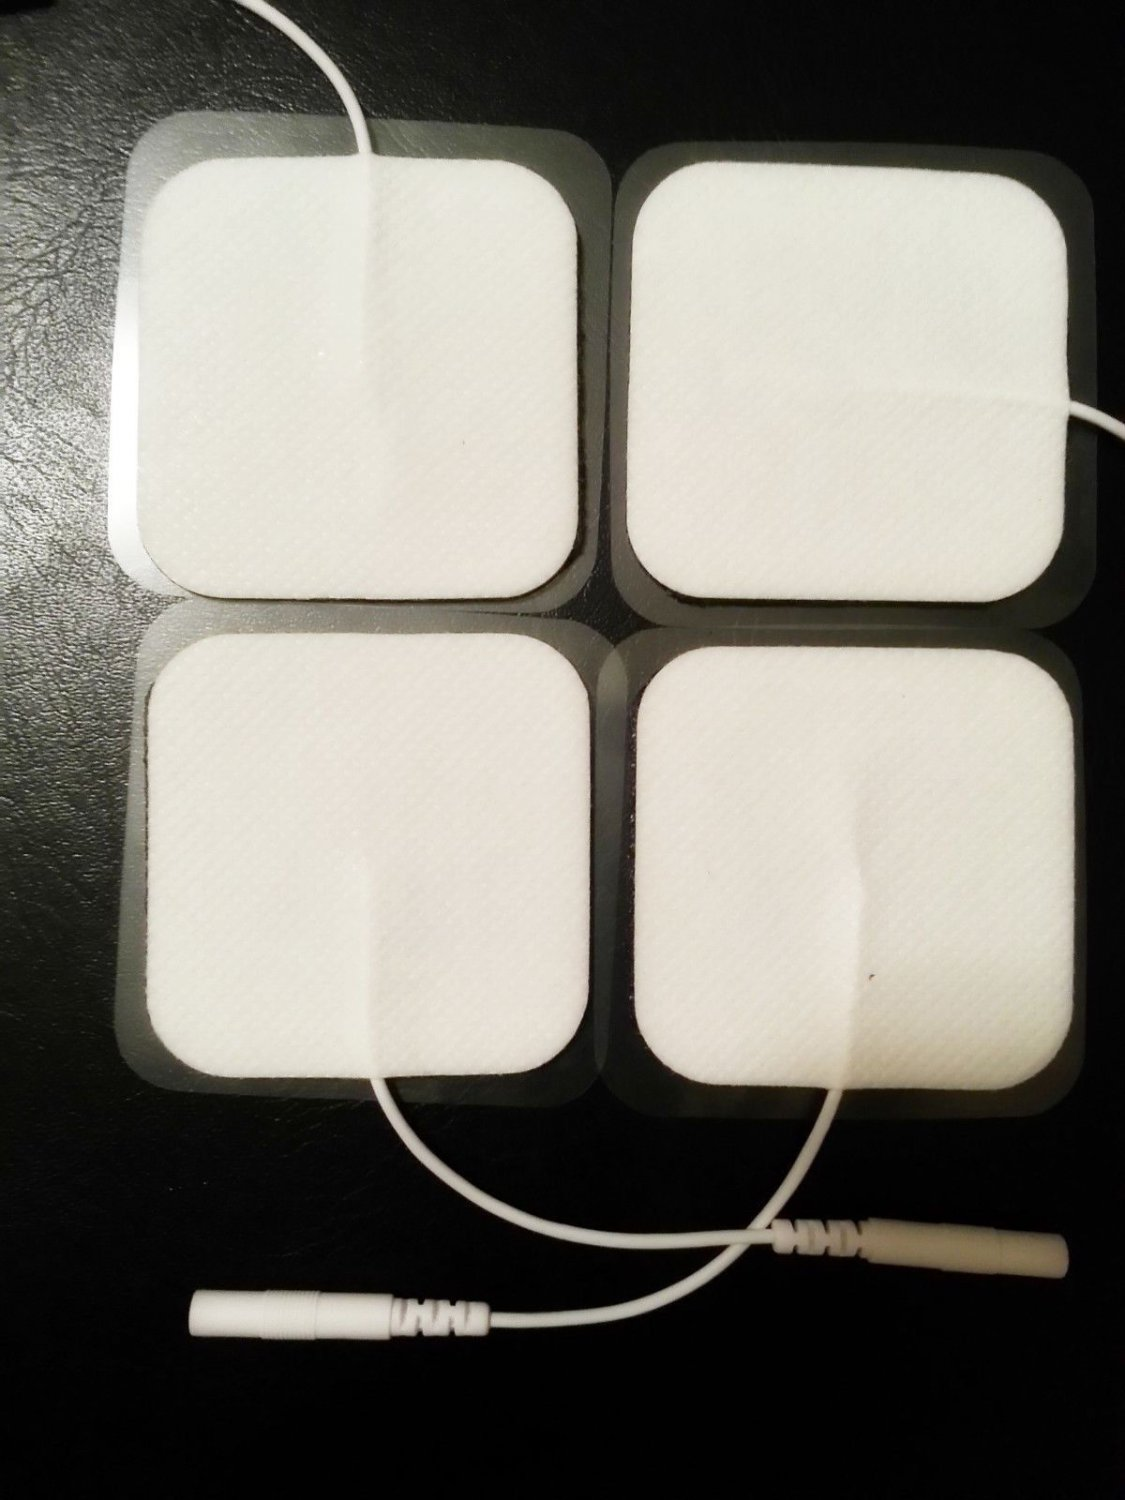 8 PC SQUARE REPLACEMENT ELECTRODE MASSAGE PADS FOR EMS 7500 TWIN STIM INTENSITY